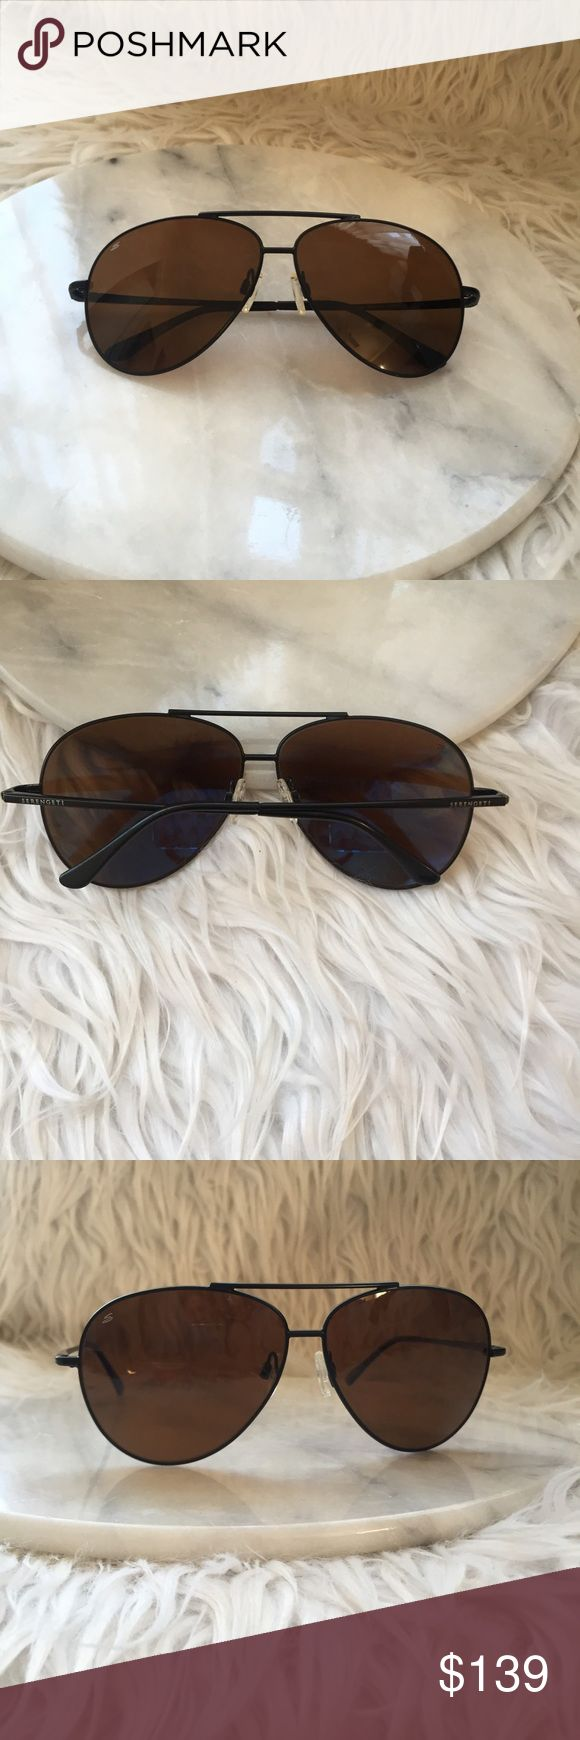 Serengeti sunglasses Serengeti sunglasses!!!! large aviator C6879 super cute!!!! Serengeti Accessories Sunglasses